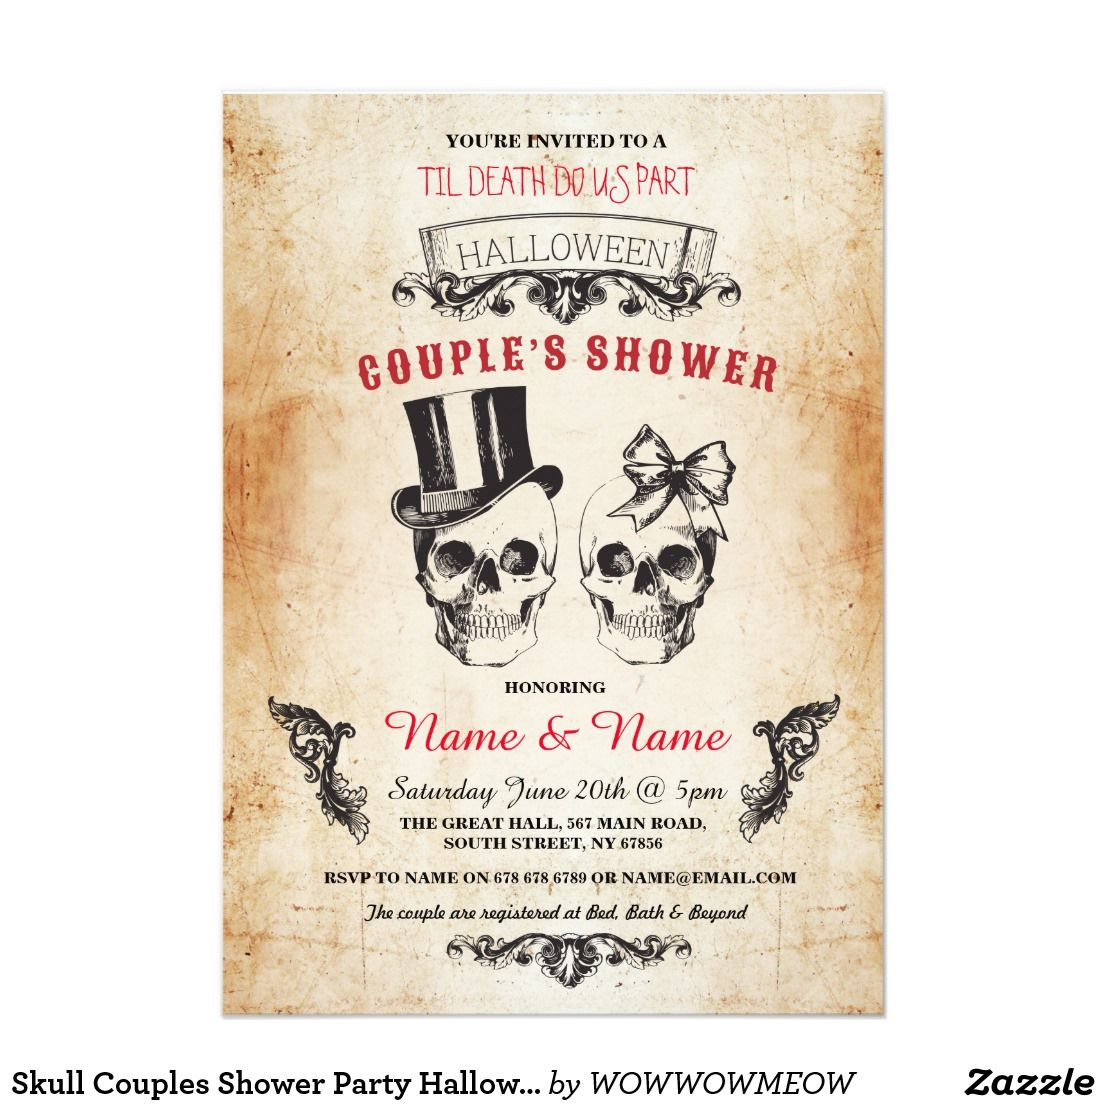 Skull Couples Shower Party Halloween Gothic Invite | Couple shower ...